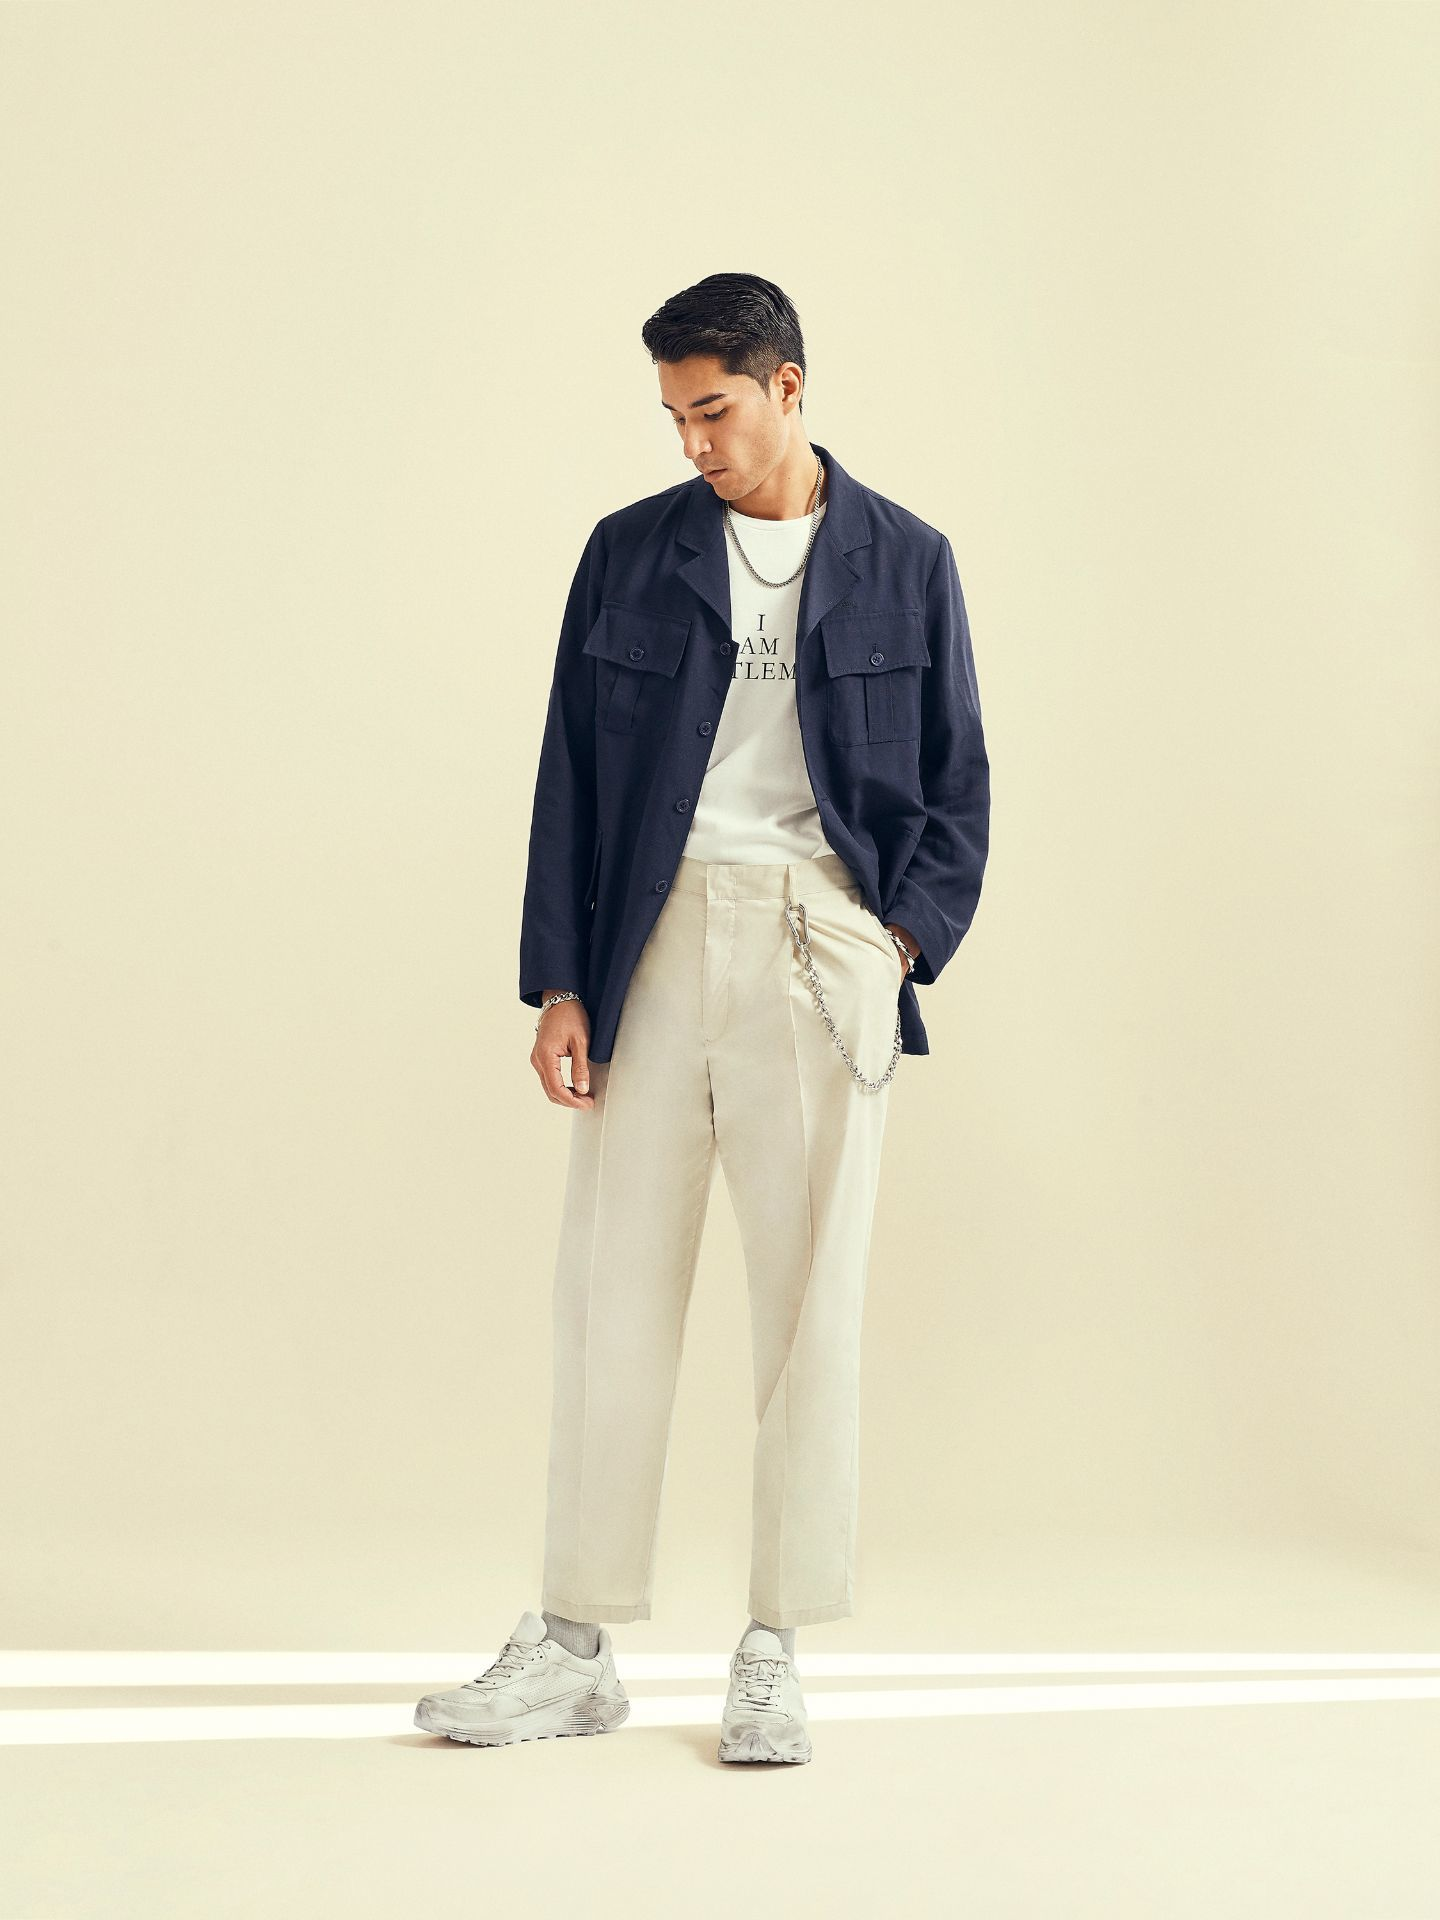 gentleman 2019 summer lookbook 1 1